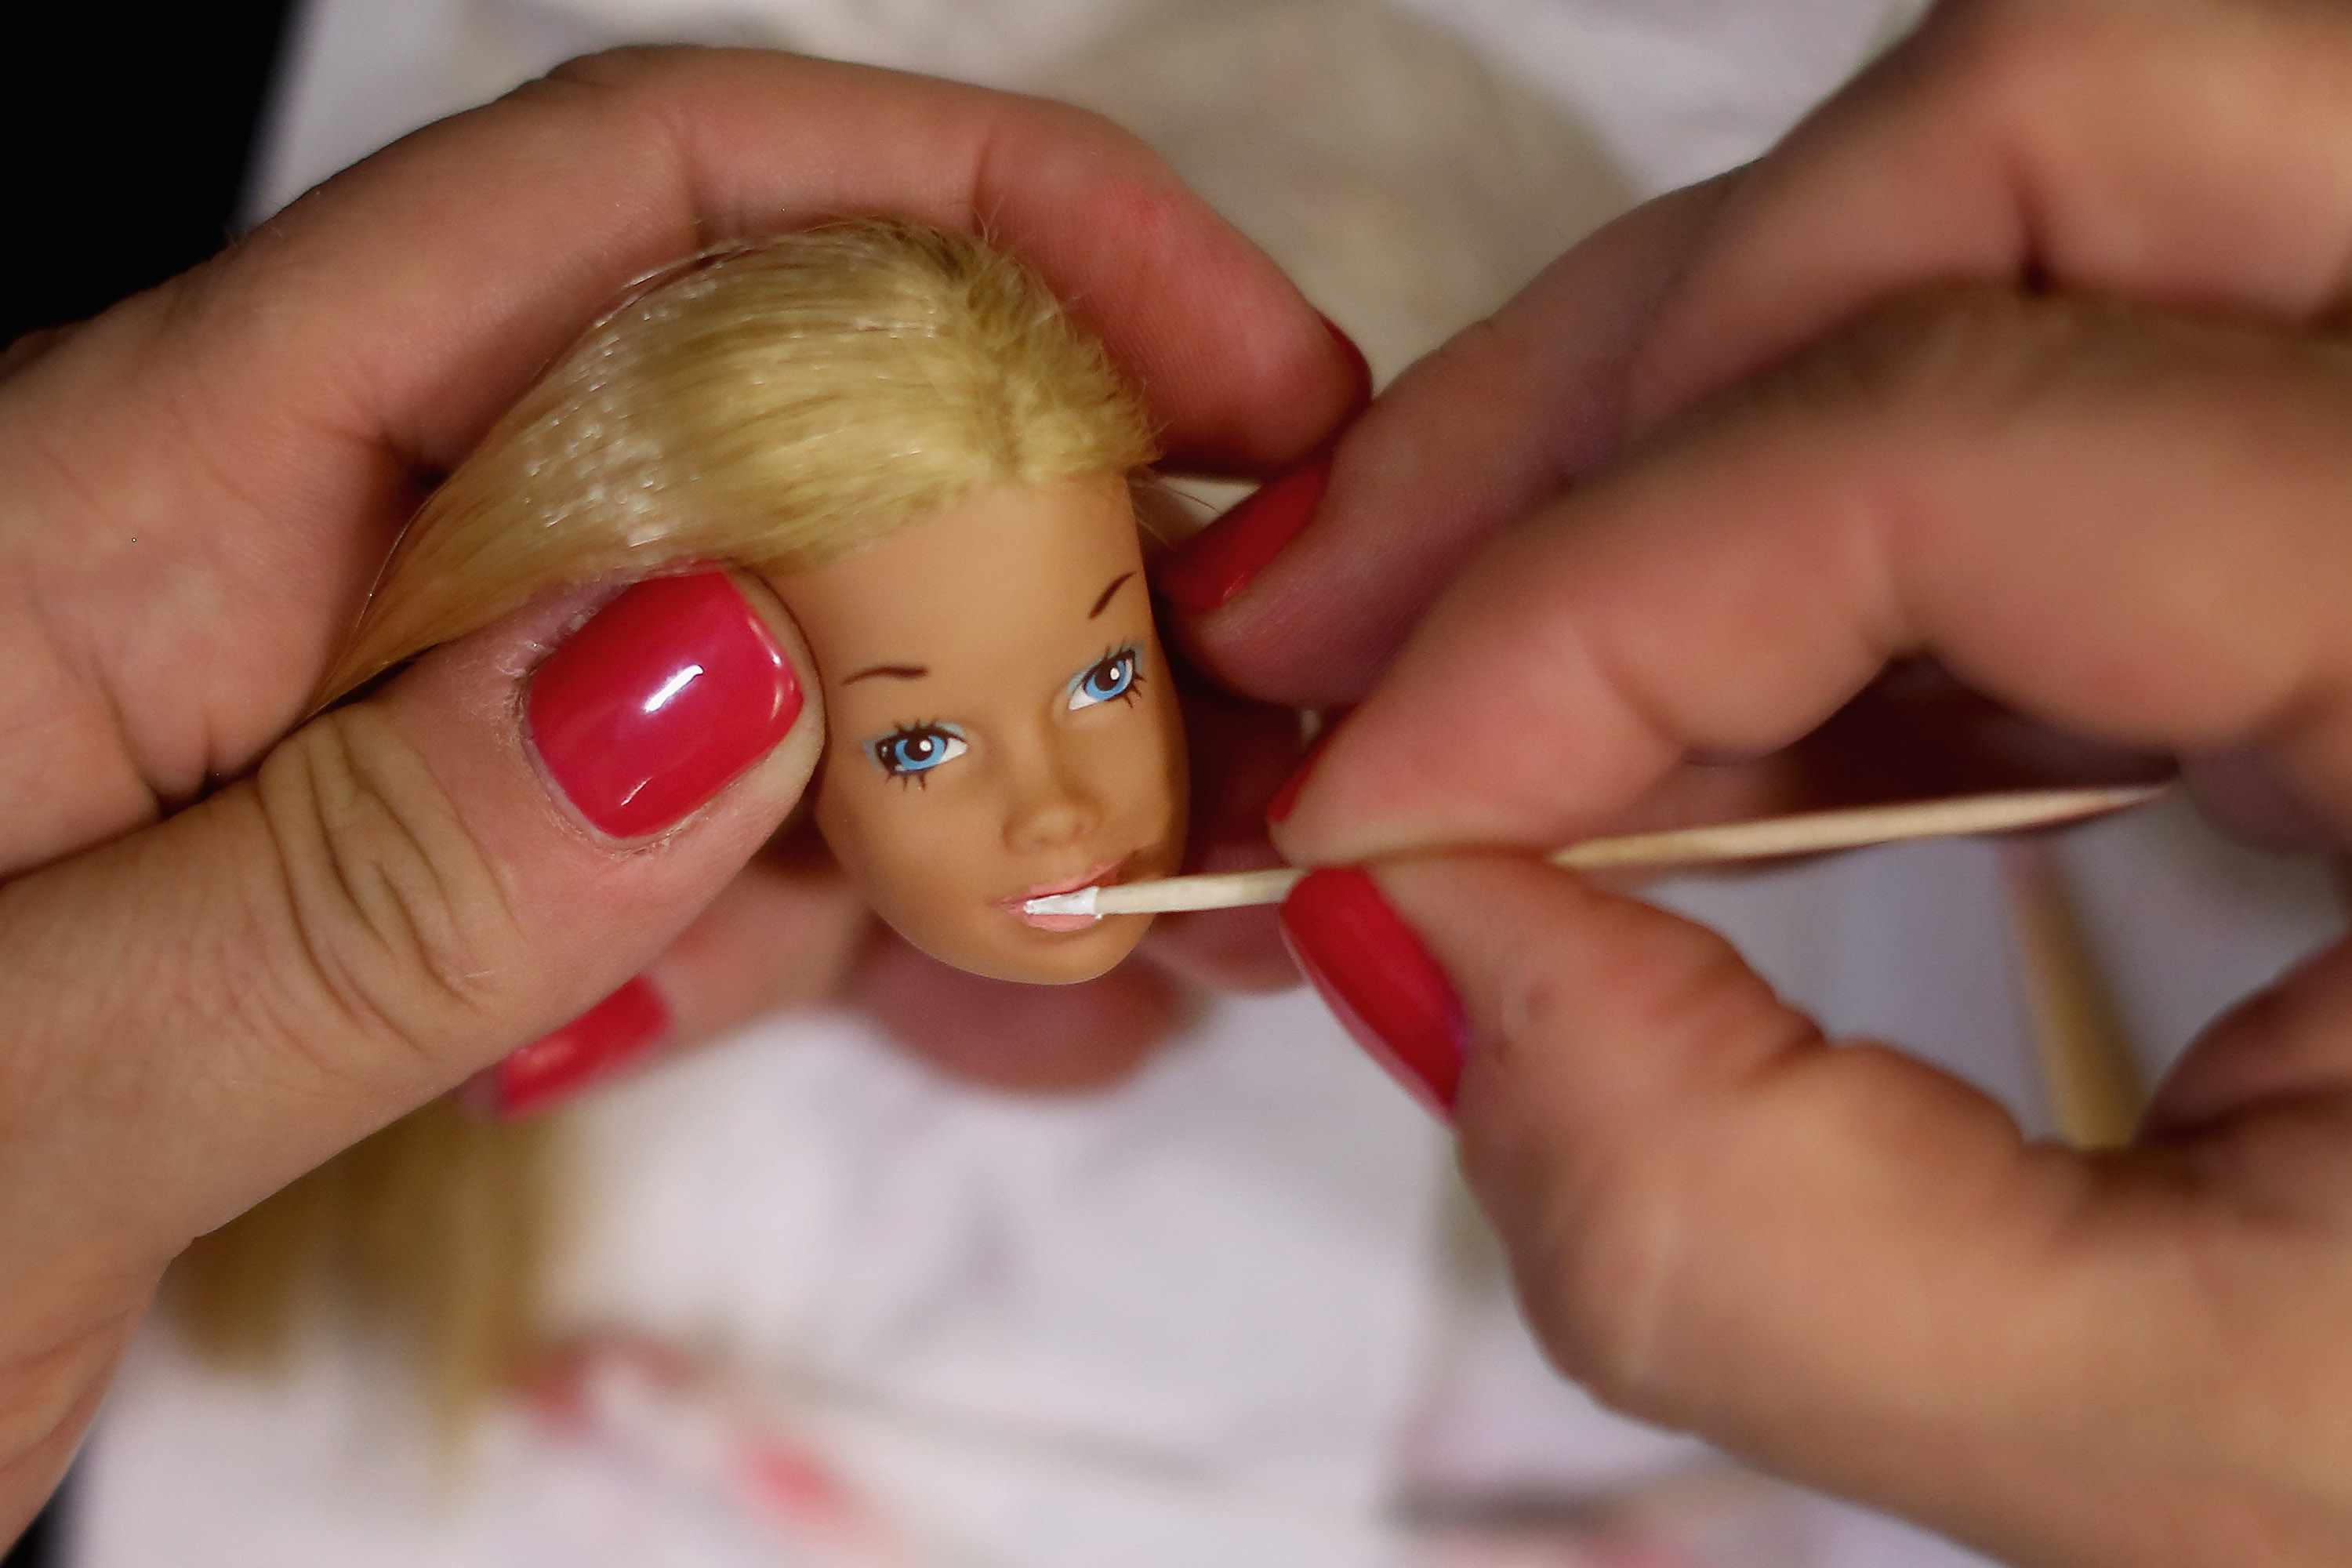 Someone painting new features on Barbie doll head